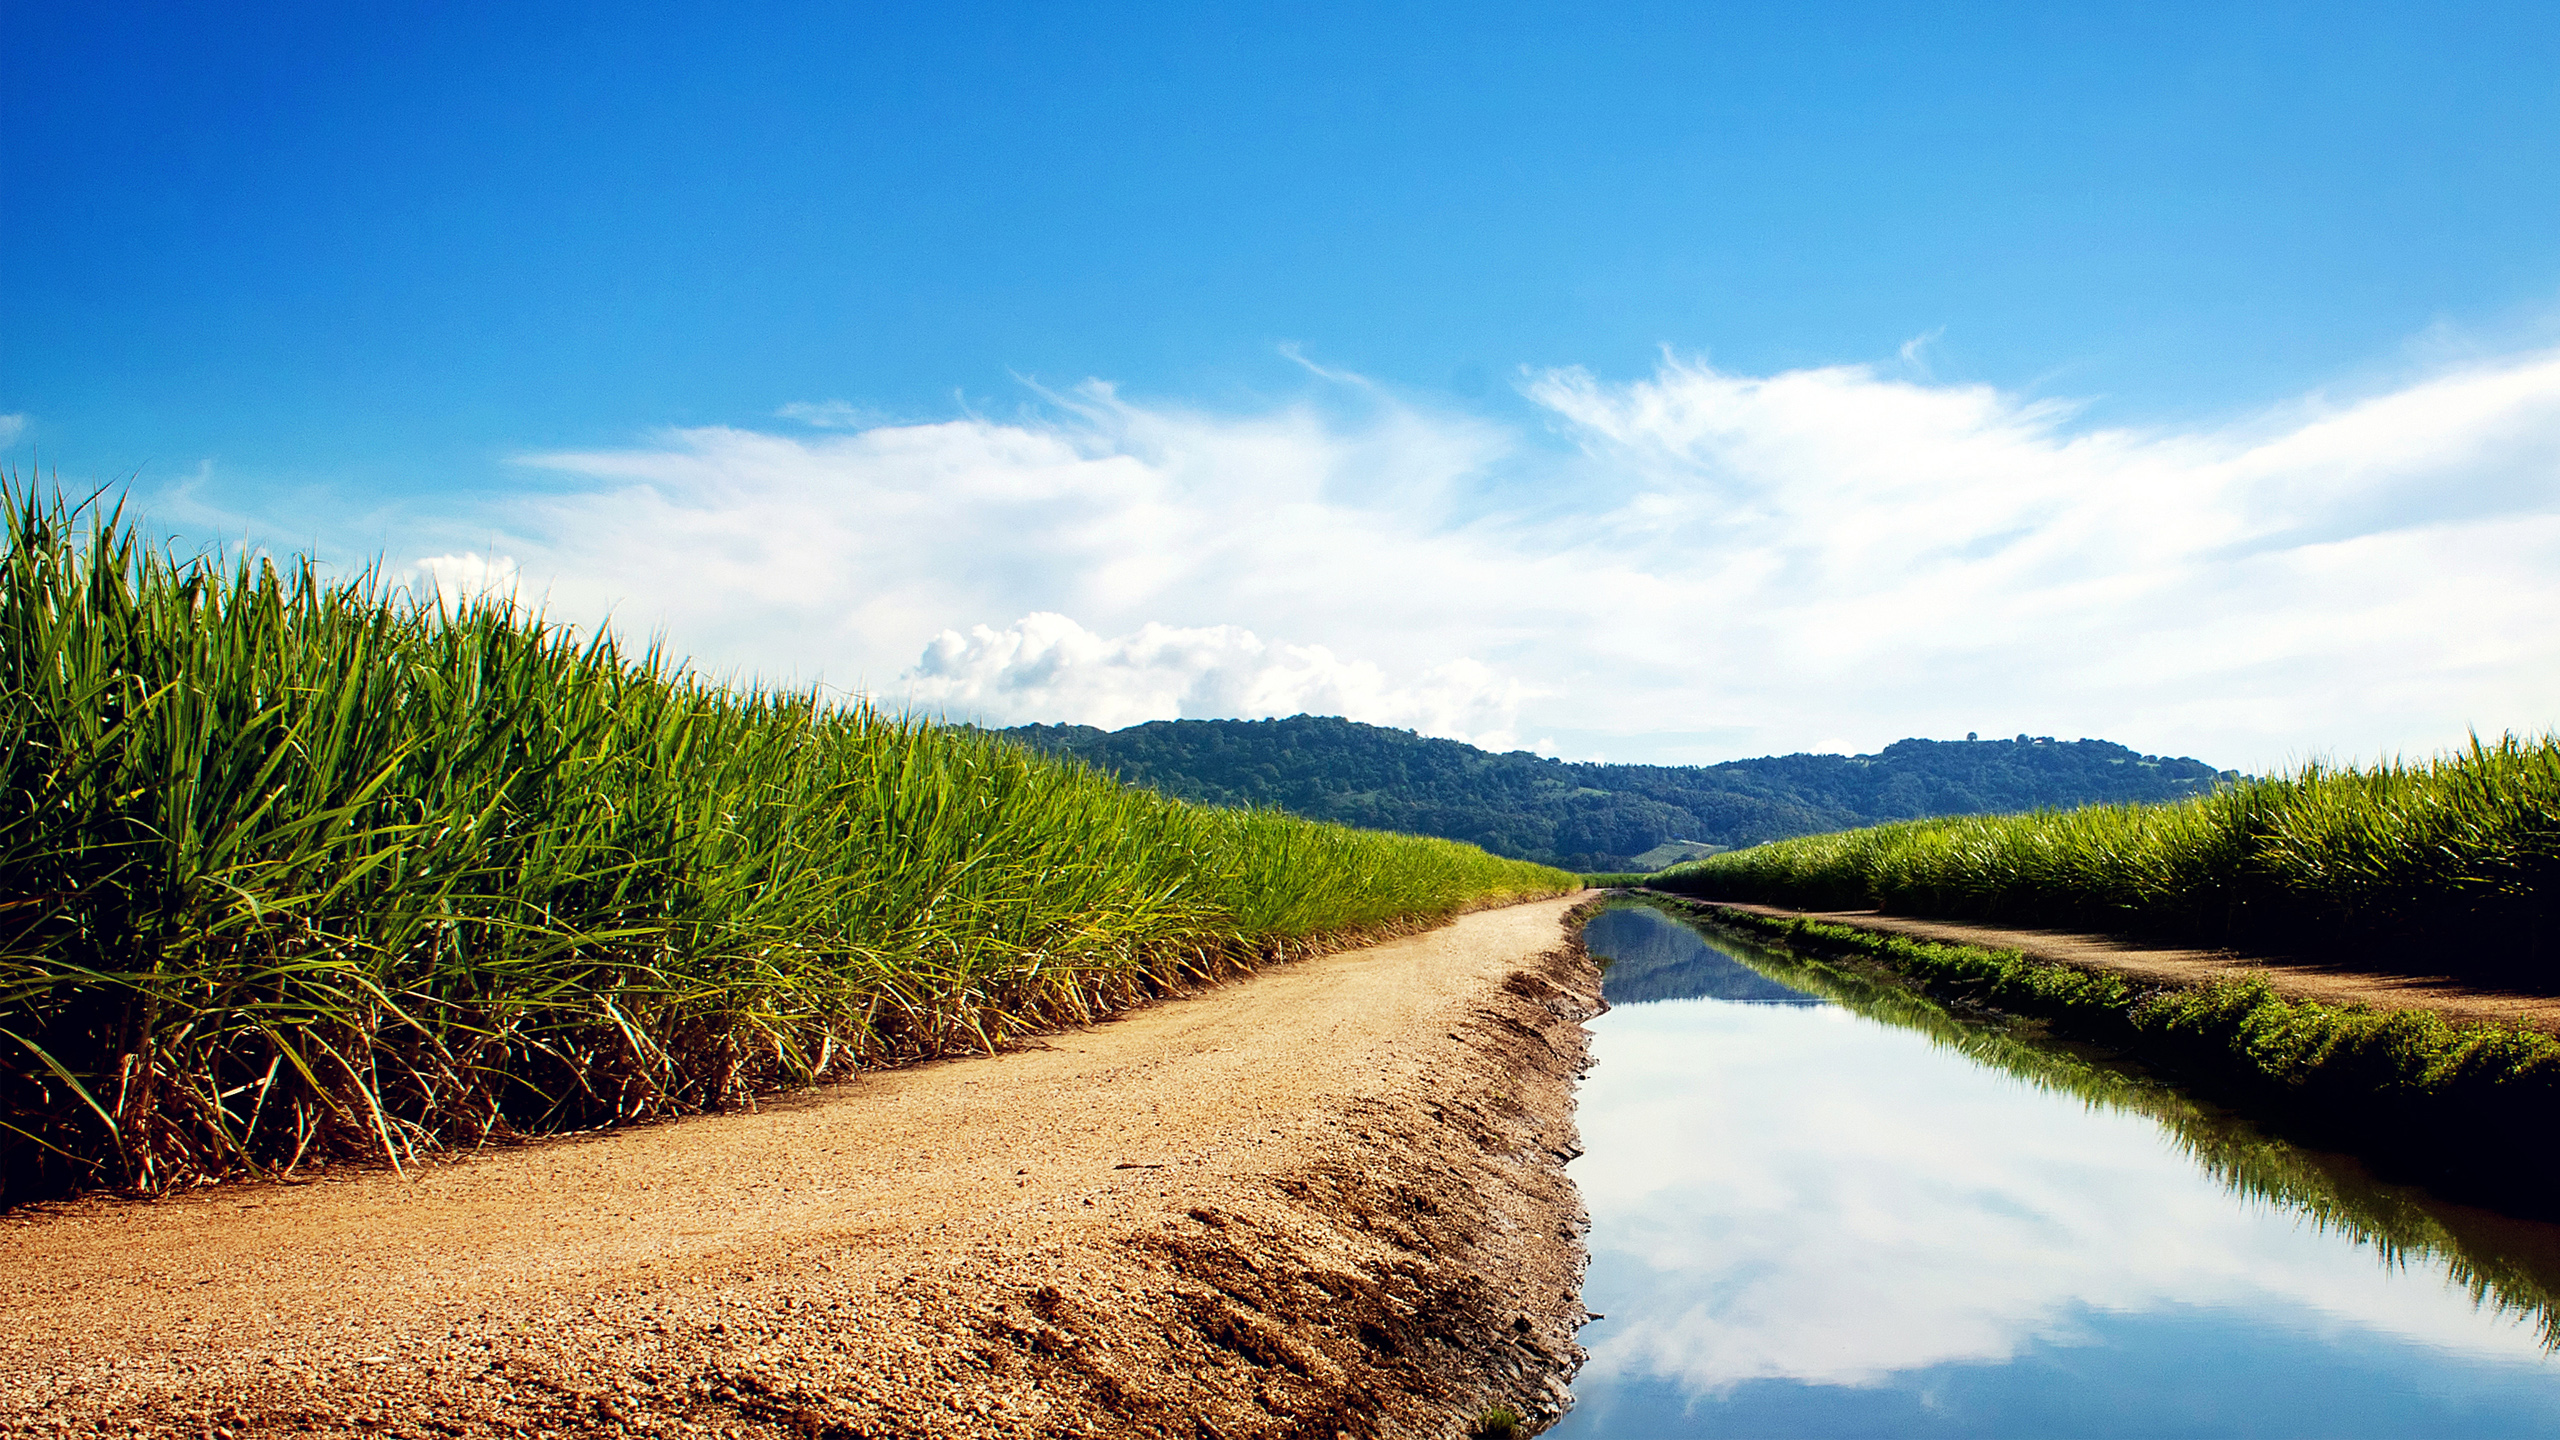 Sugarcane Fields Wallpapers HD Wallpapers 2560x1440